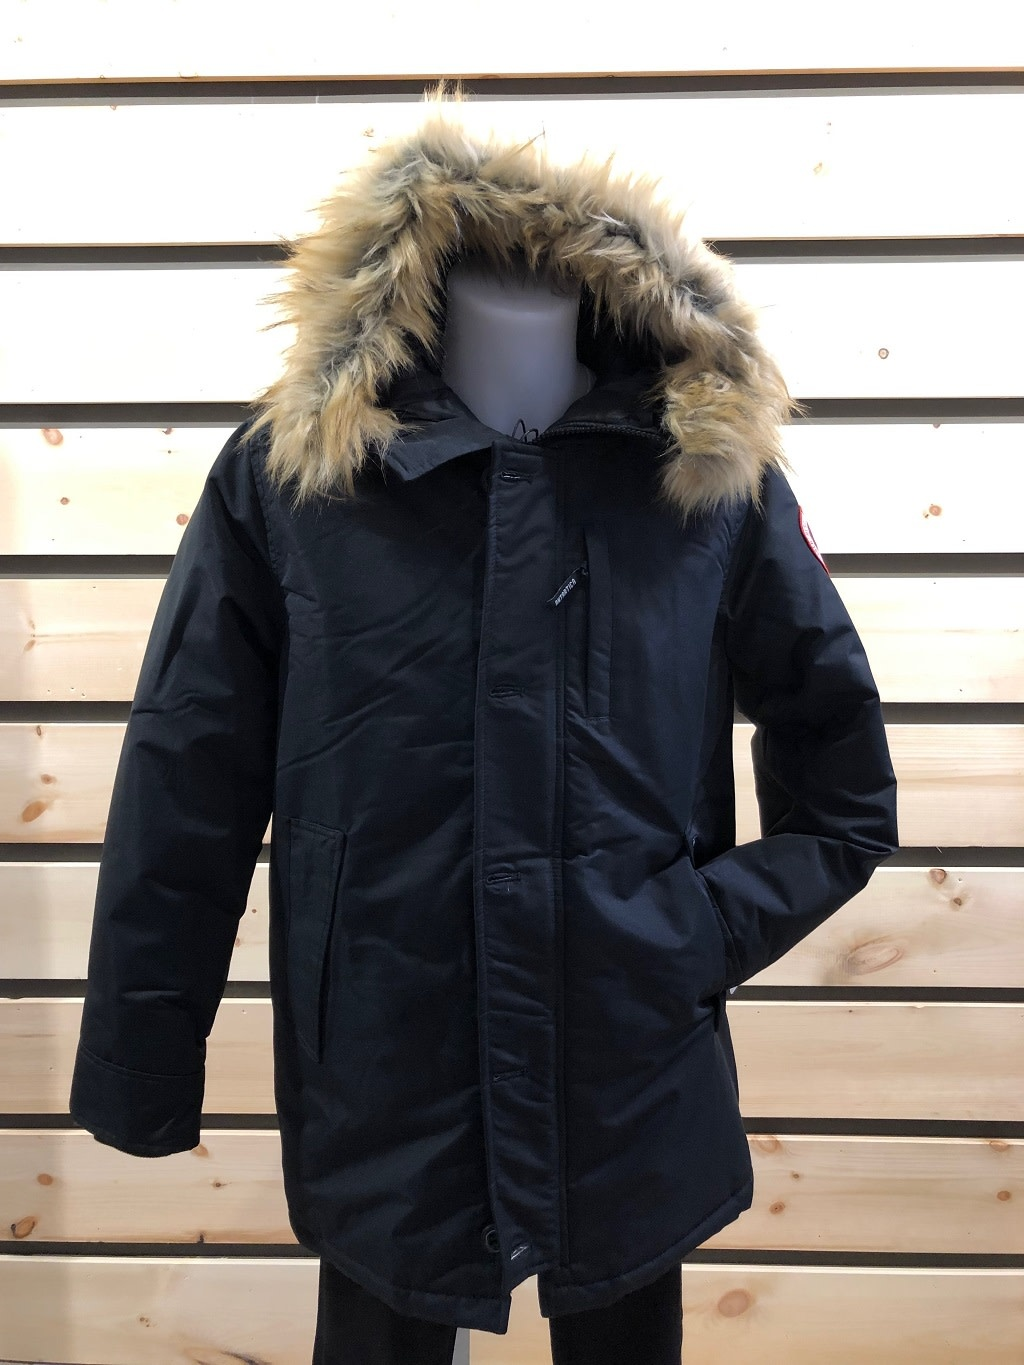 WHITE PEAK DAVE JACKETS